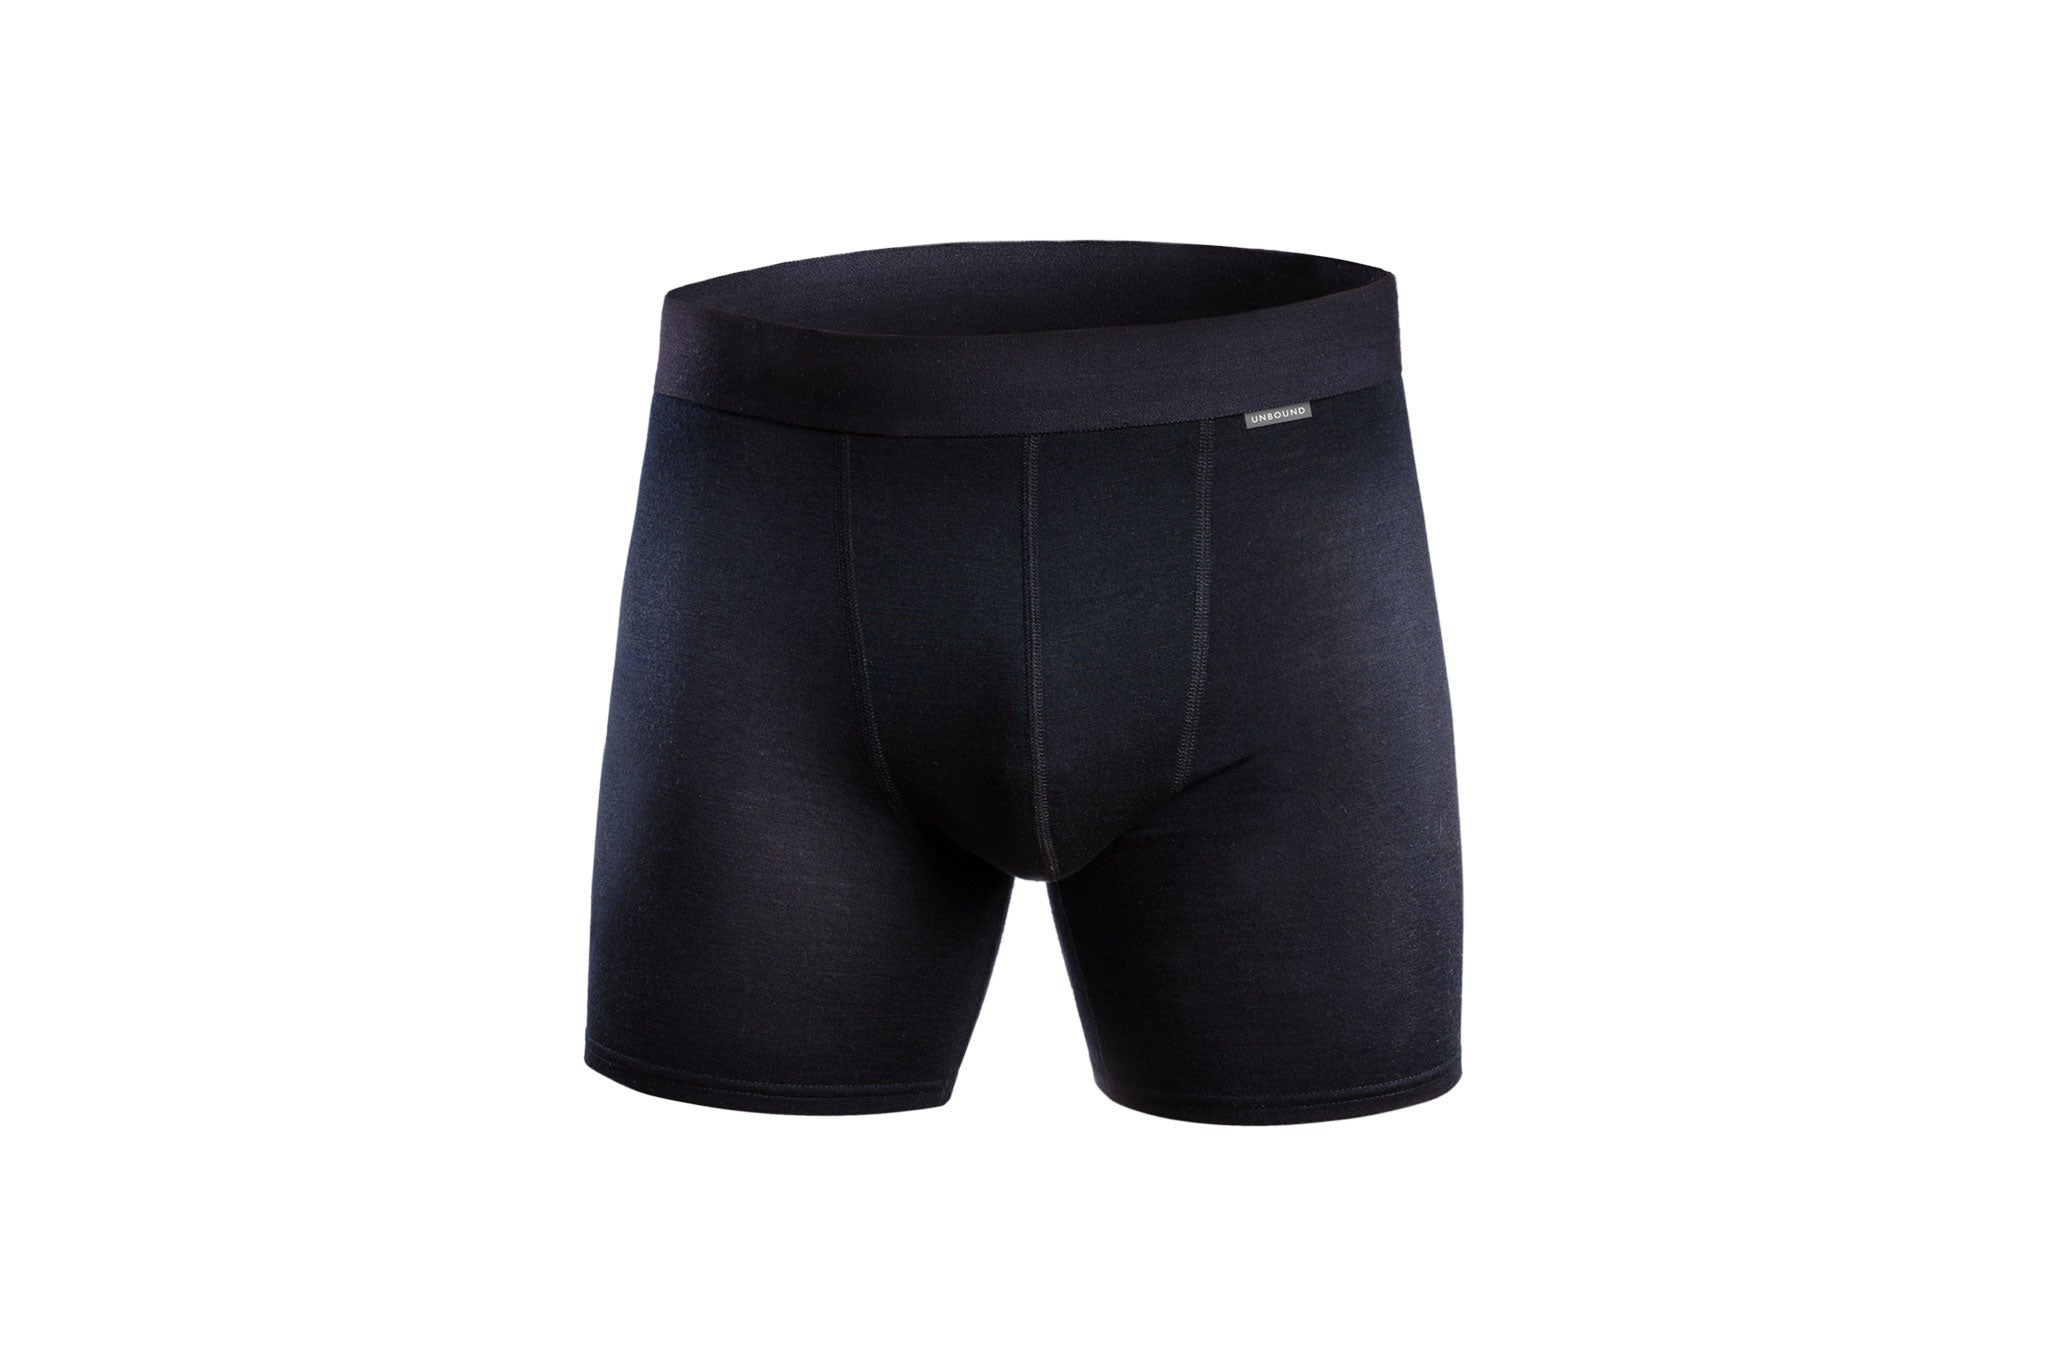 Black Merino Wool Boxer Briefs